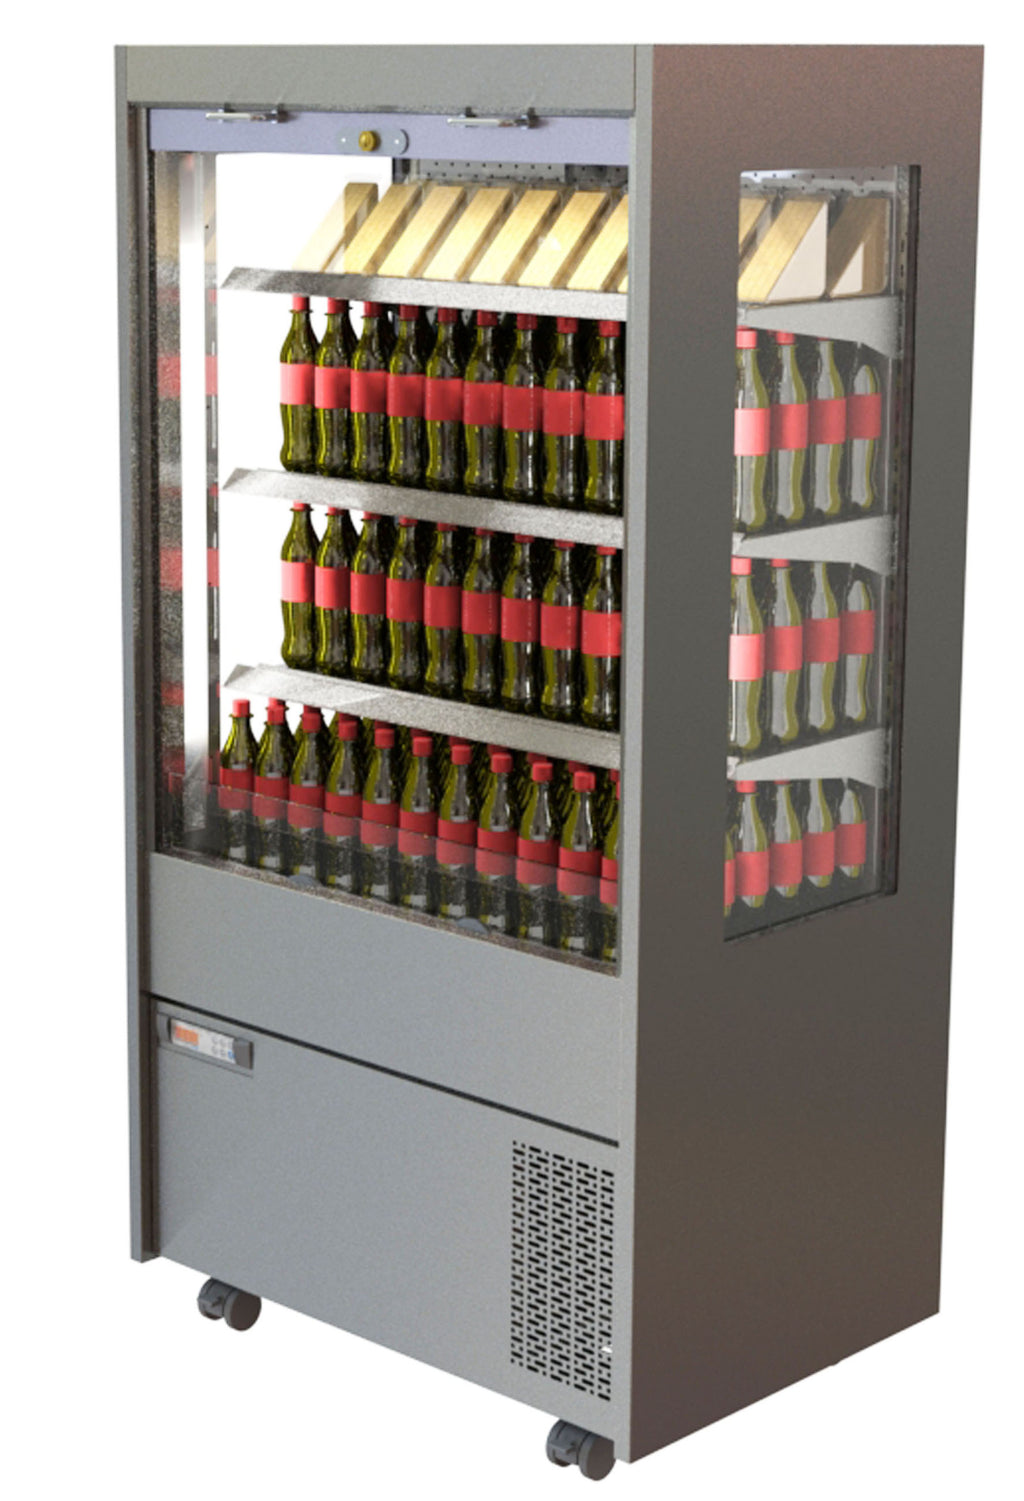 CED Chilled Multideck MM600SRHT (With Panoramic glazed side panels)